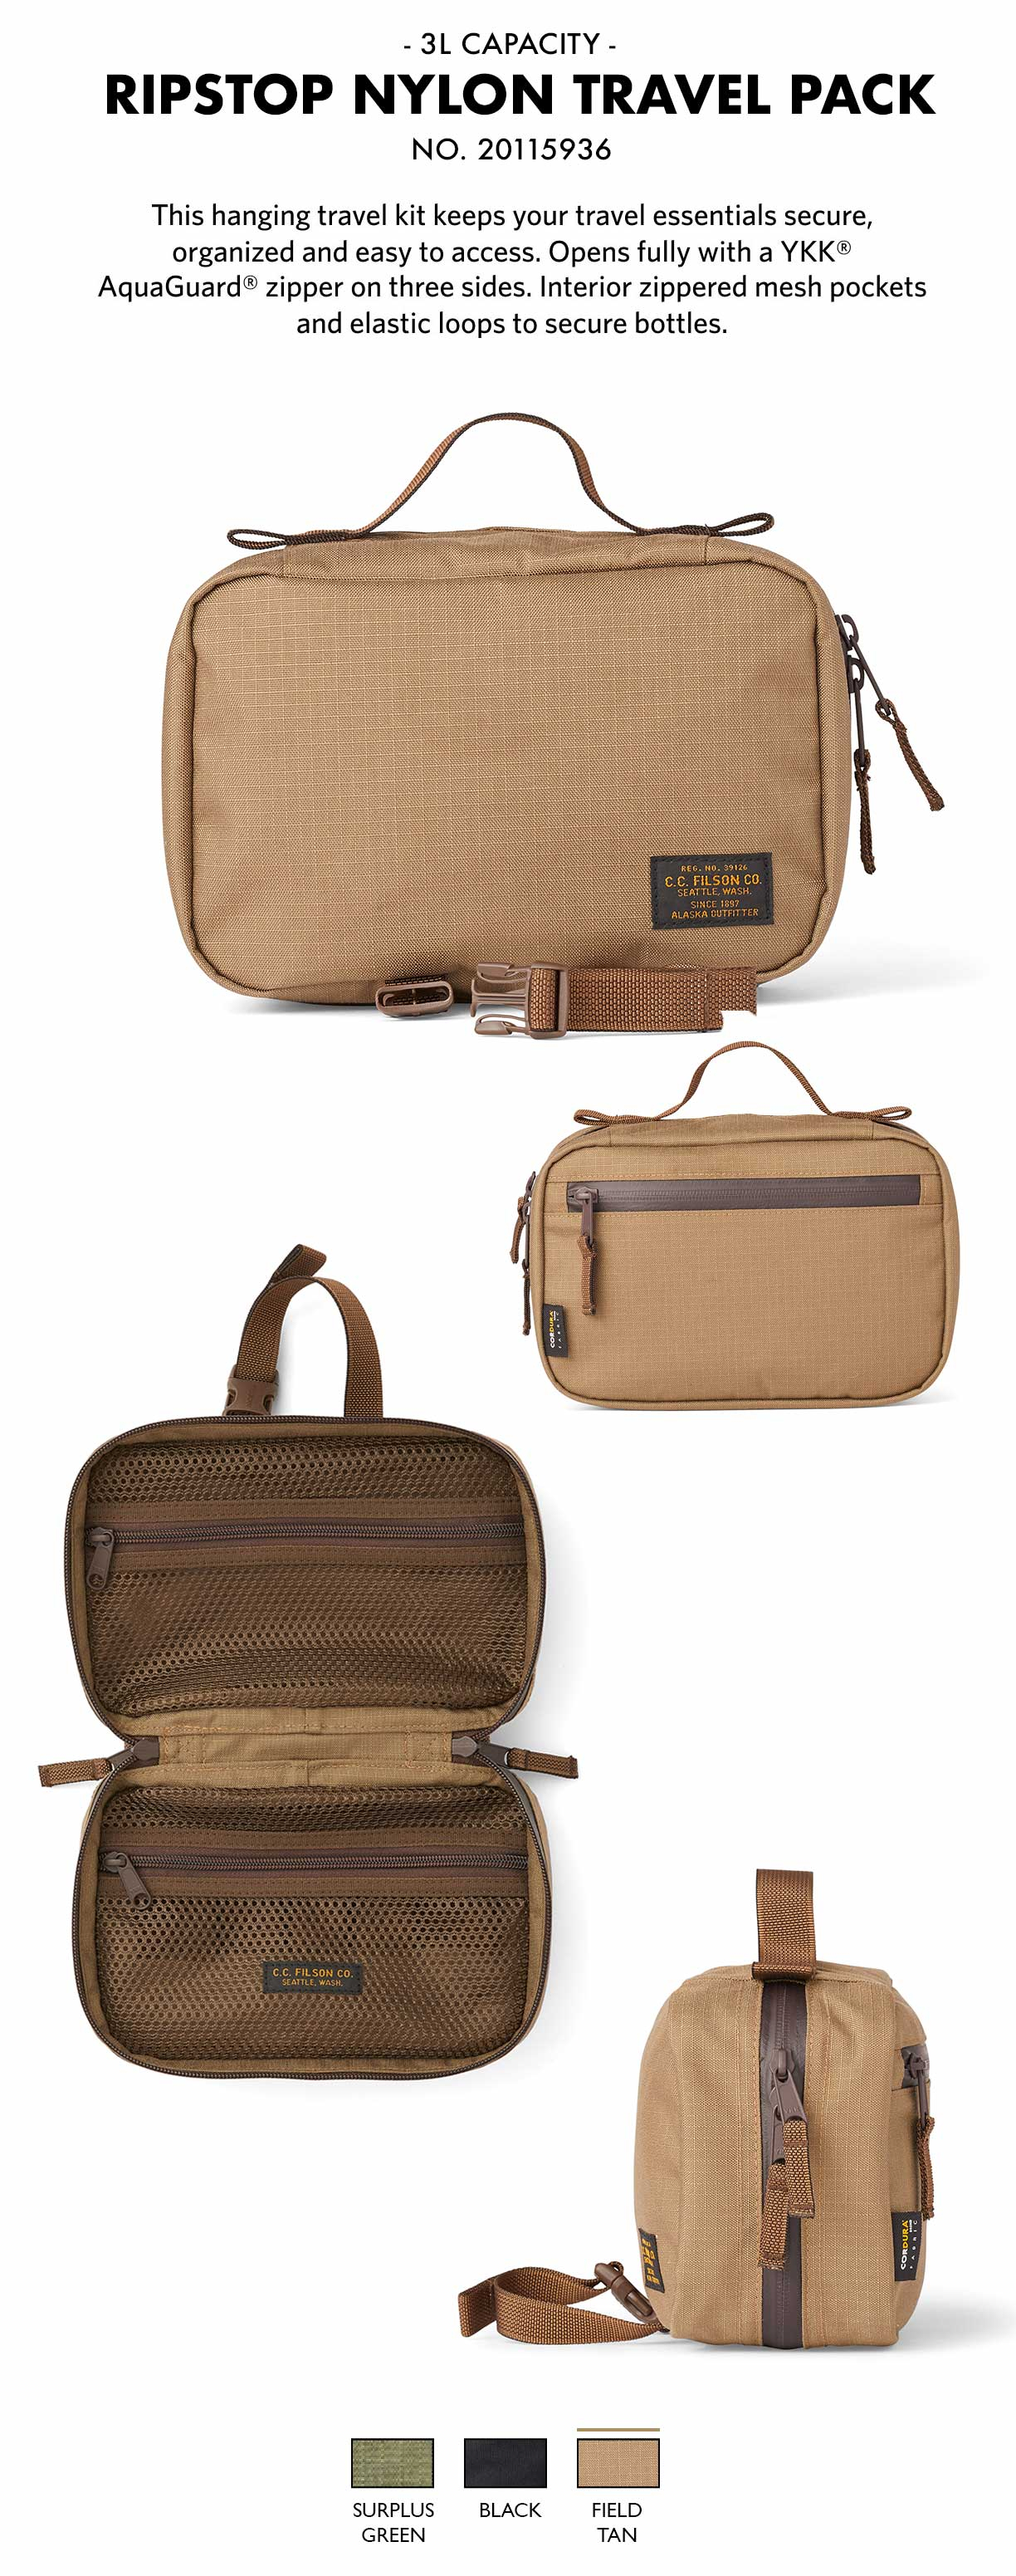 Filson Ripstop Nylon Travel Pack Field Tan Product-information